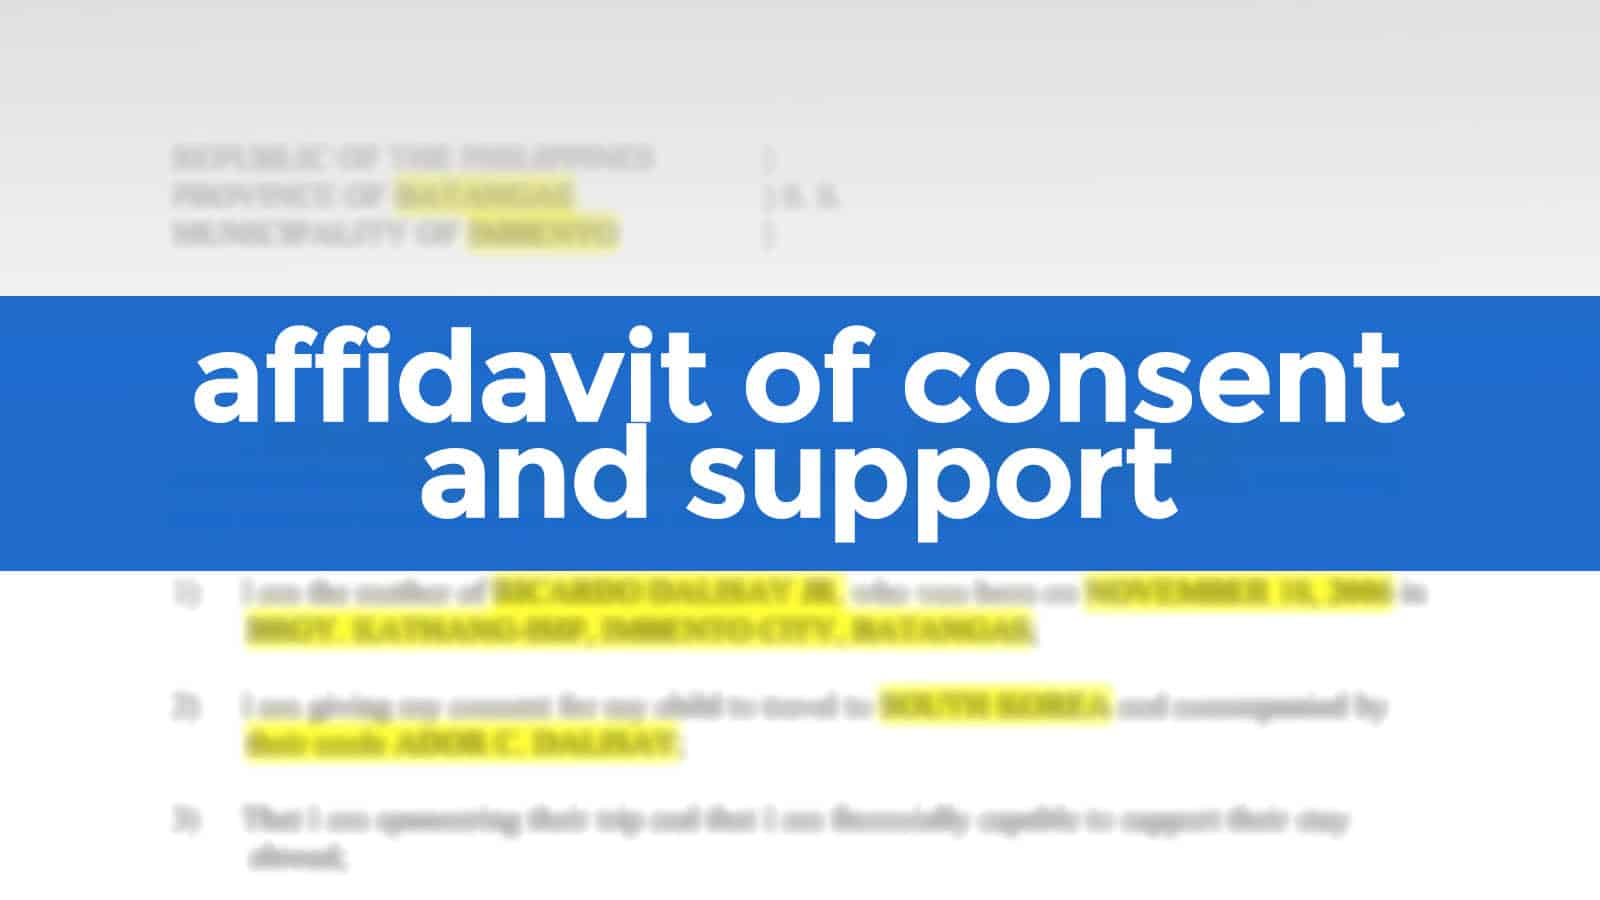 AFFIDAVIT OF CONSENT AND SUPPORT (FREE SAMPLE)